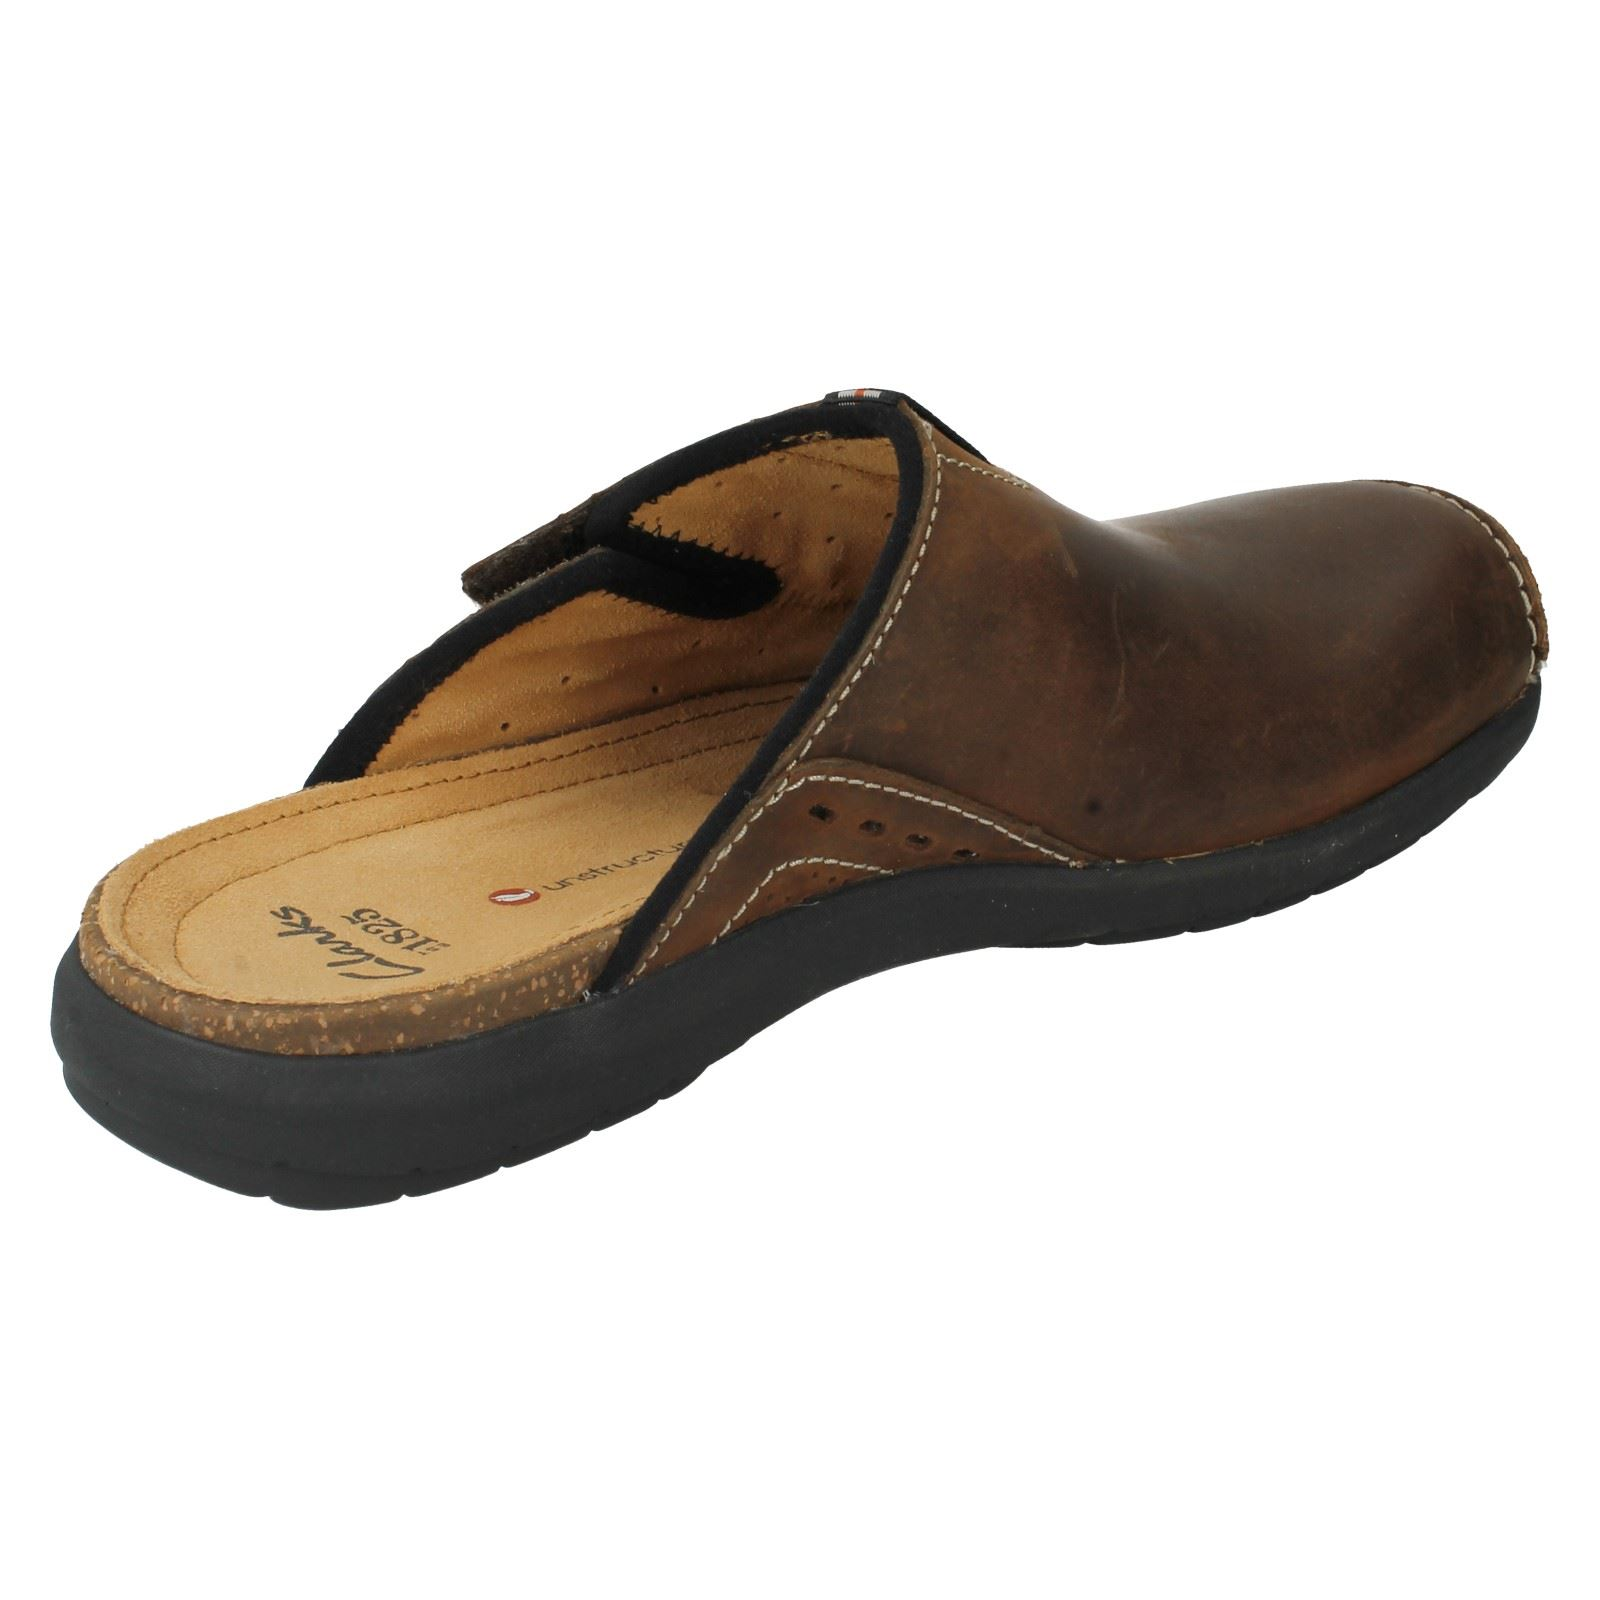 Witham Clarks Shoes